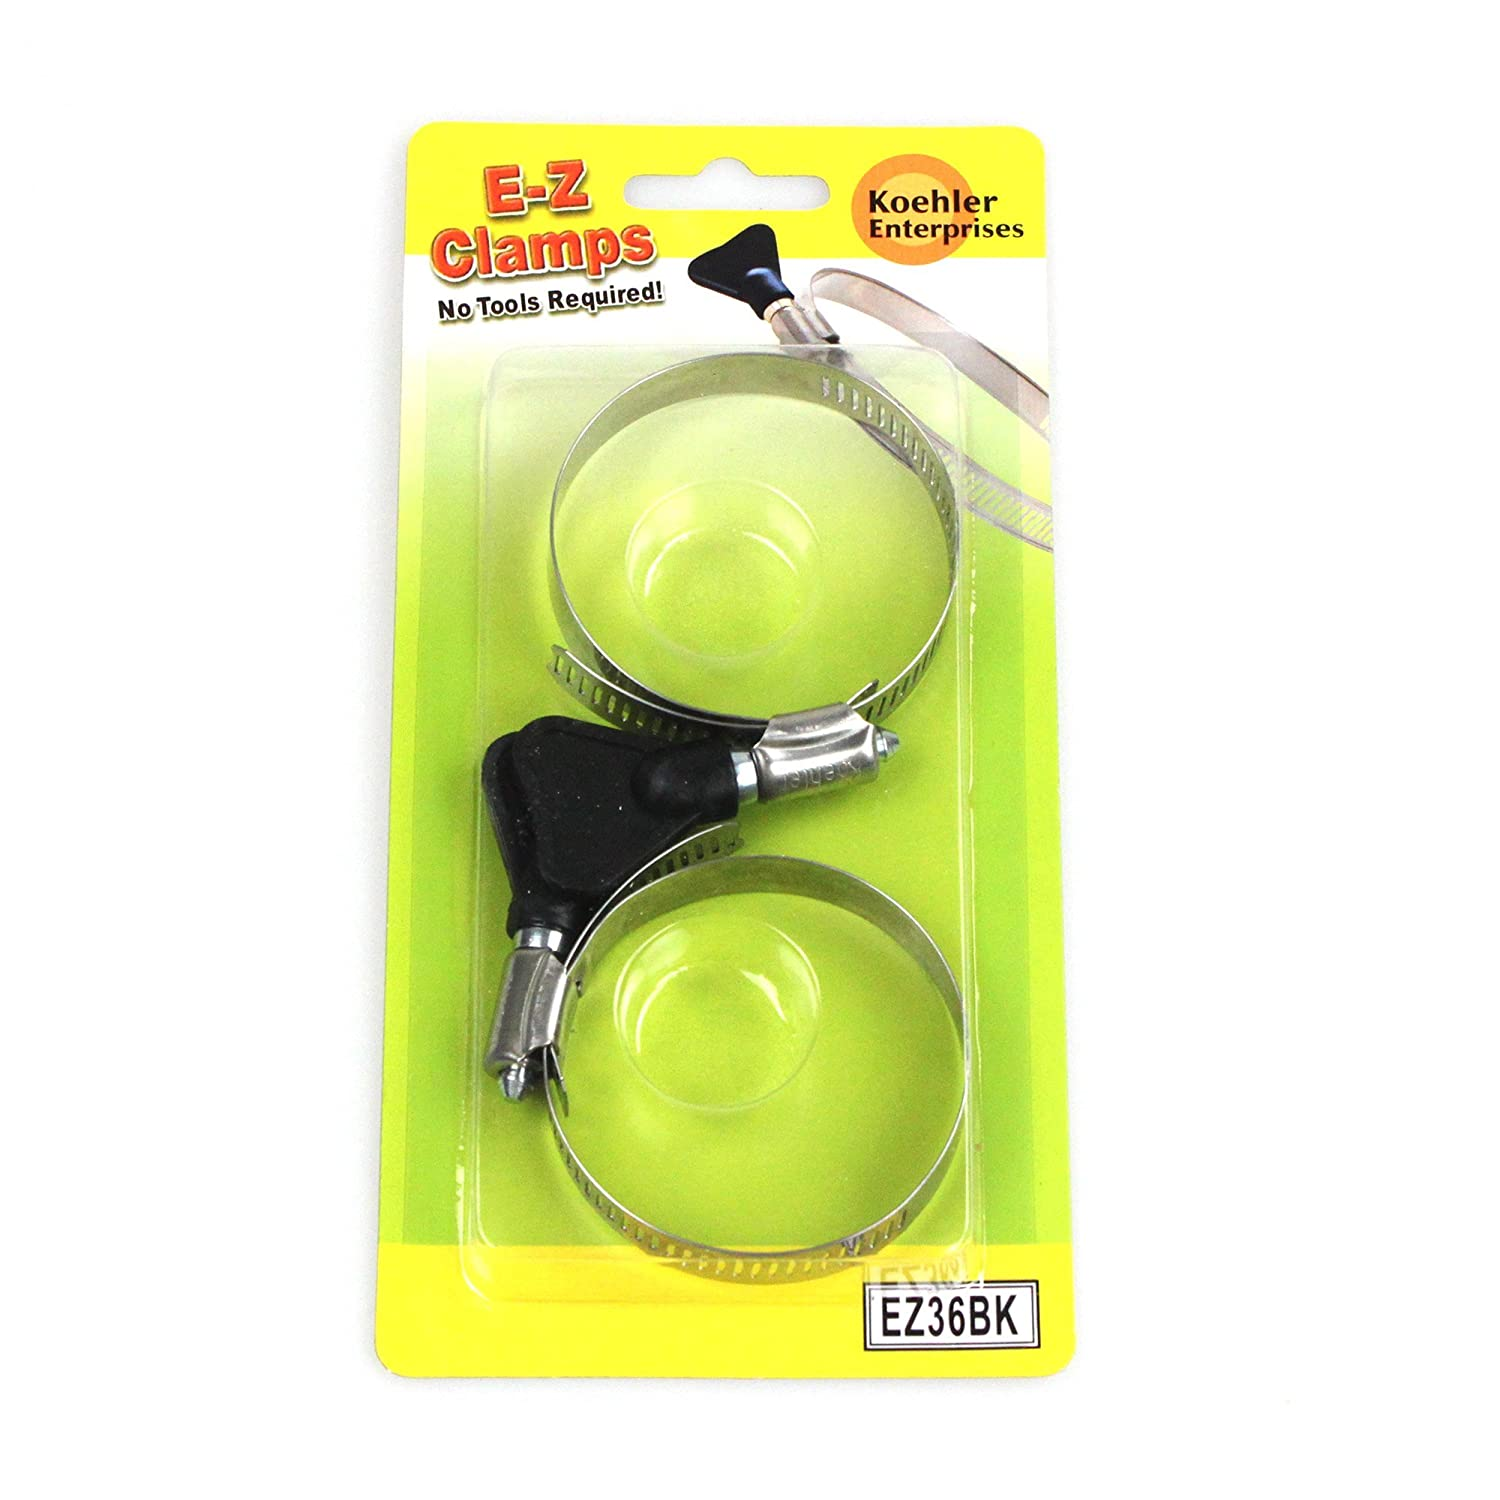 2 Pieces Each SAE Size 4, 6 and 20. No Tools Required Koehler Enterprises EZ01B EZ Clamp Blister Pack,